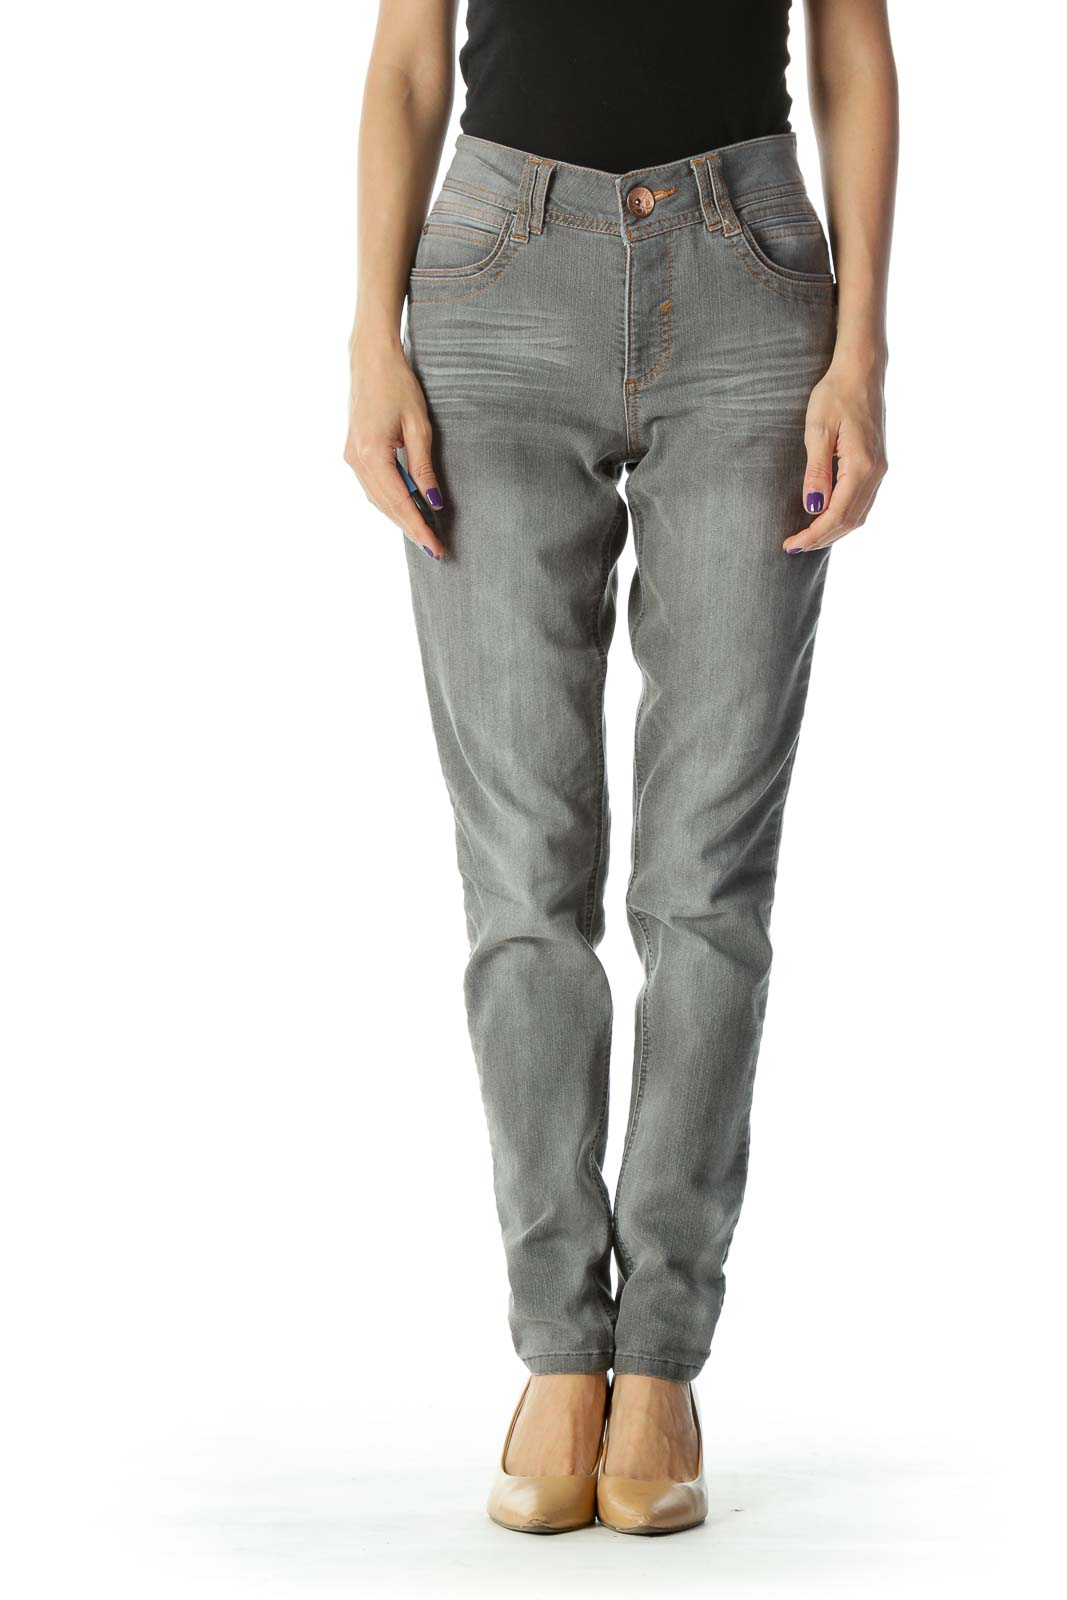 Gray Light Wash Skinny Jeans